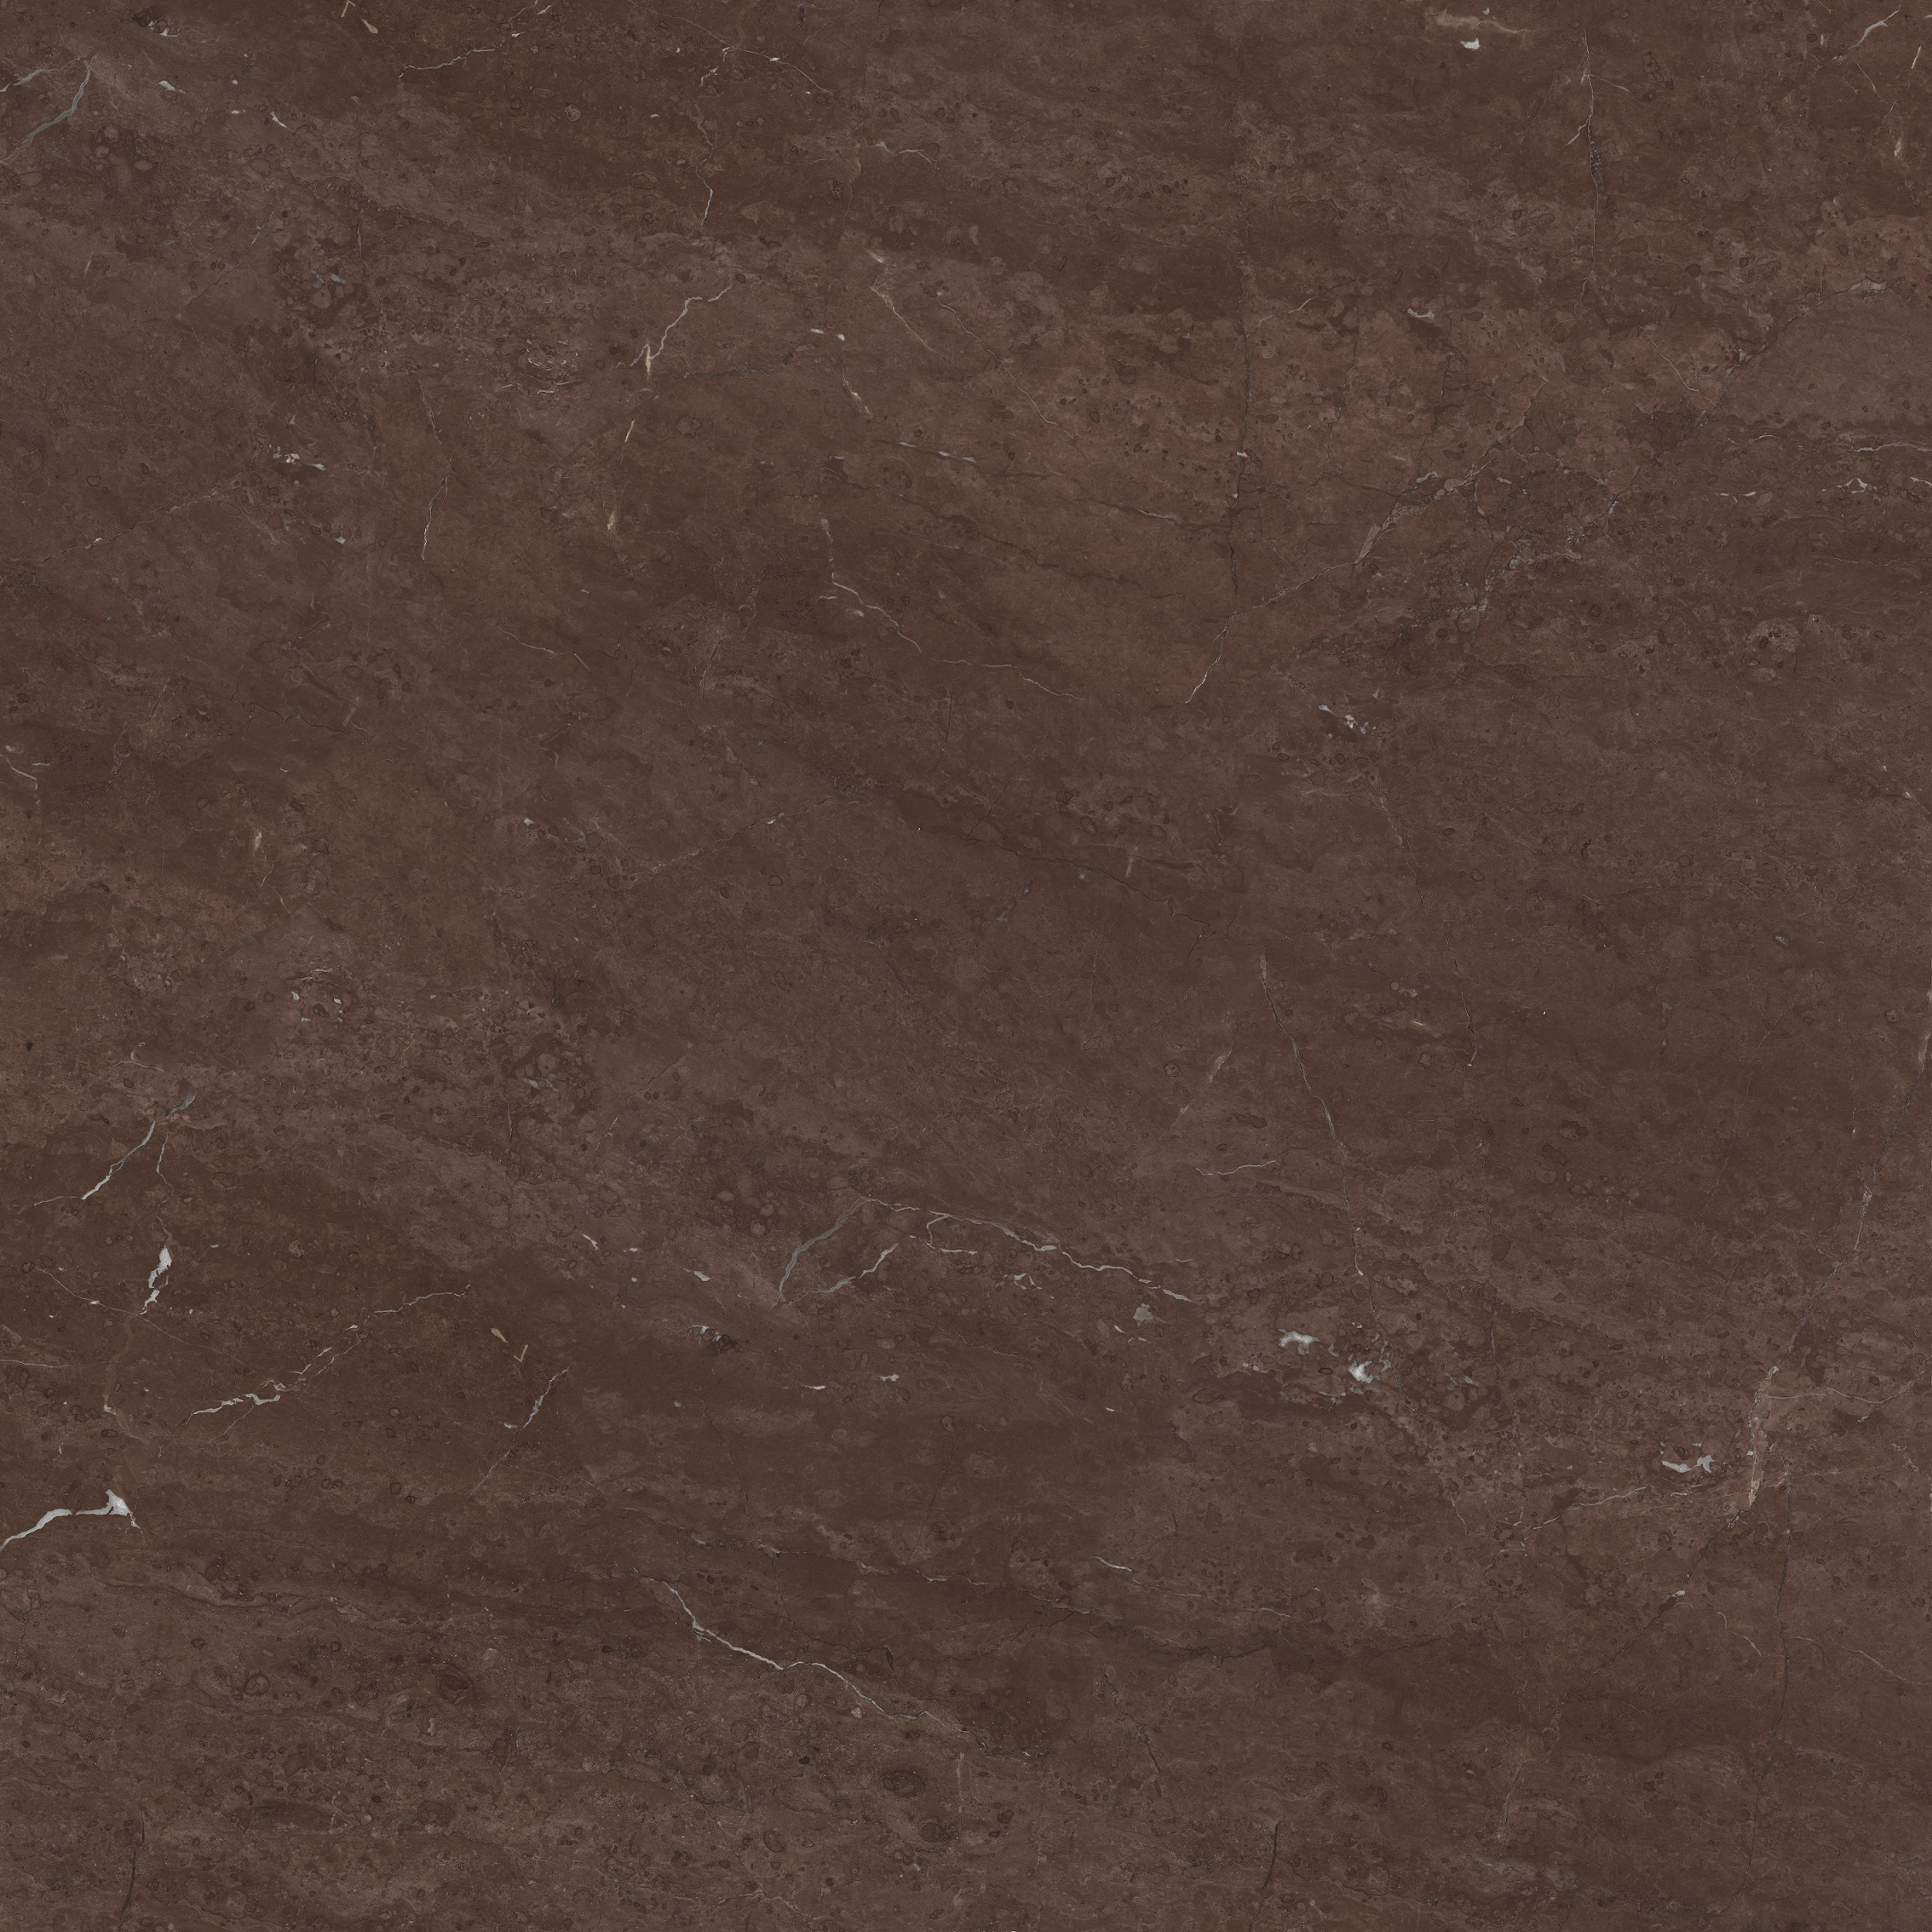 RUBINO - Brown floor tile - 40x40.jpg